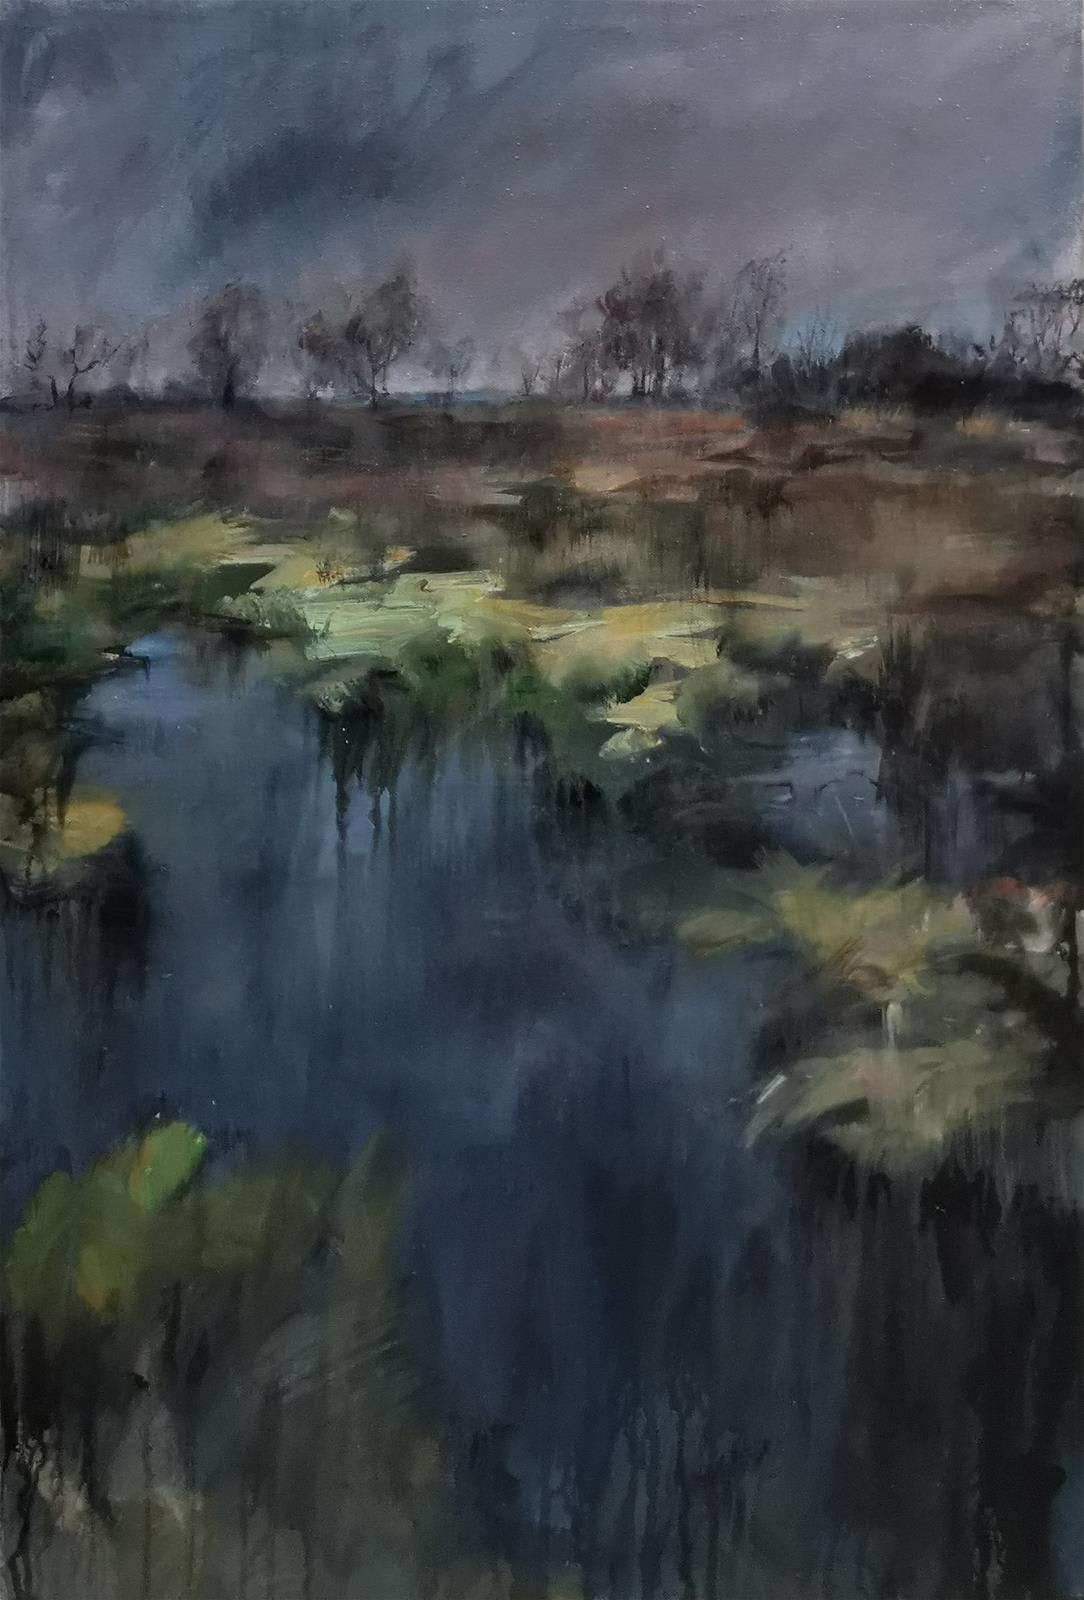 Mary Butterworth, Between Land and Water